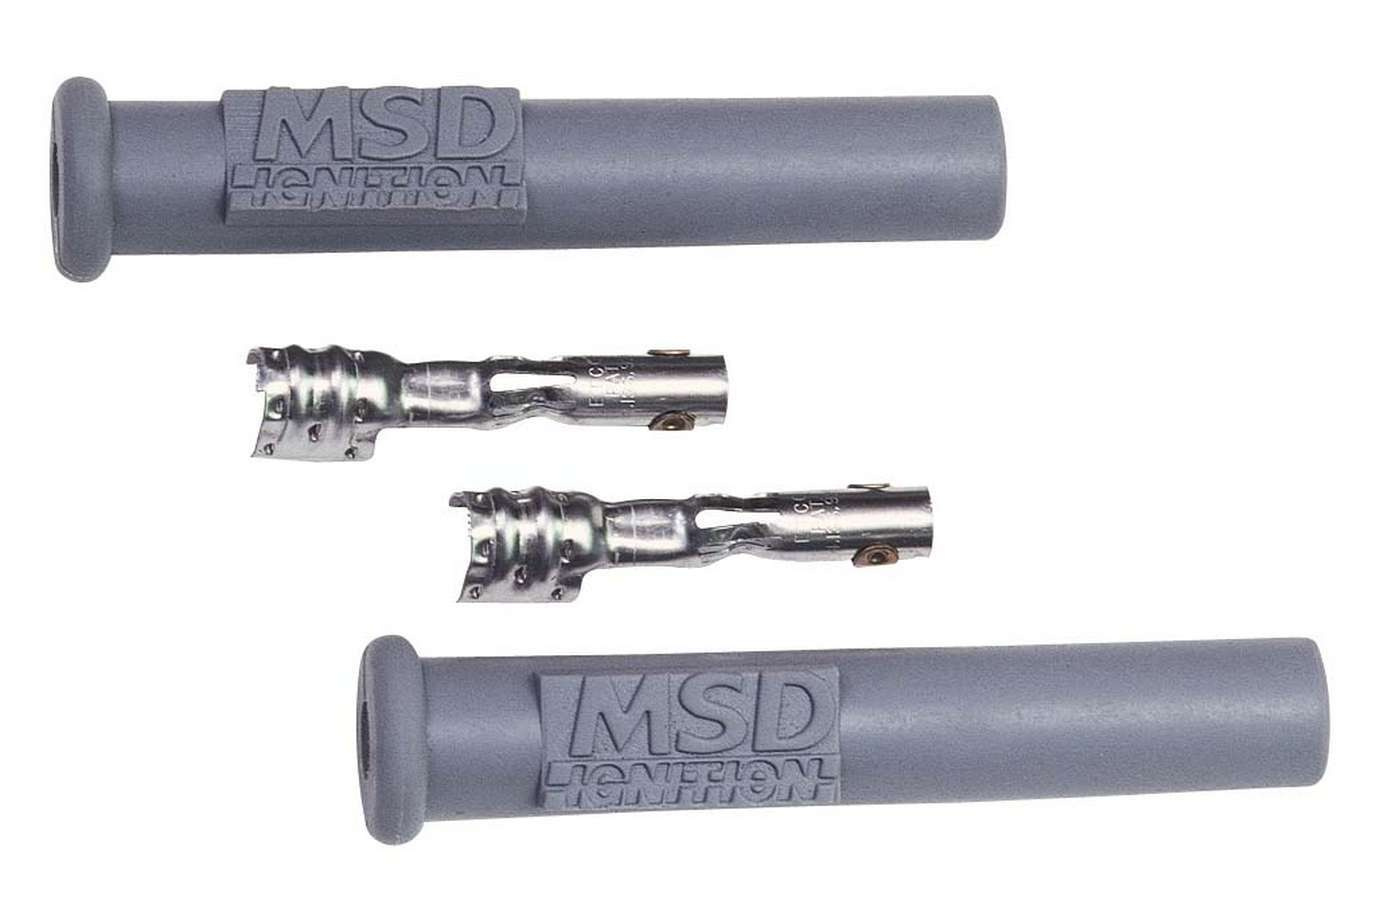 Msd Ignition Straight Spark Plug Boots- 2 Per Card